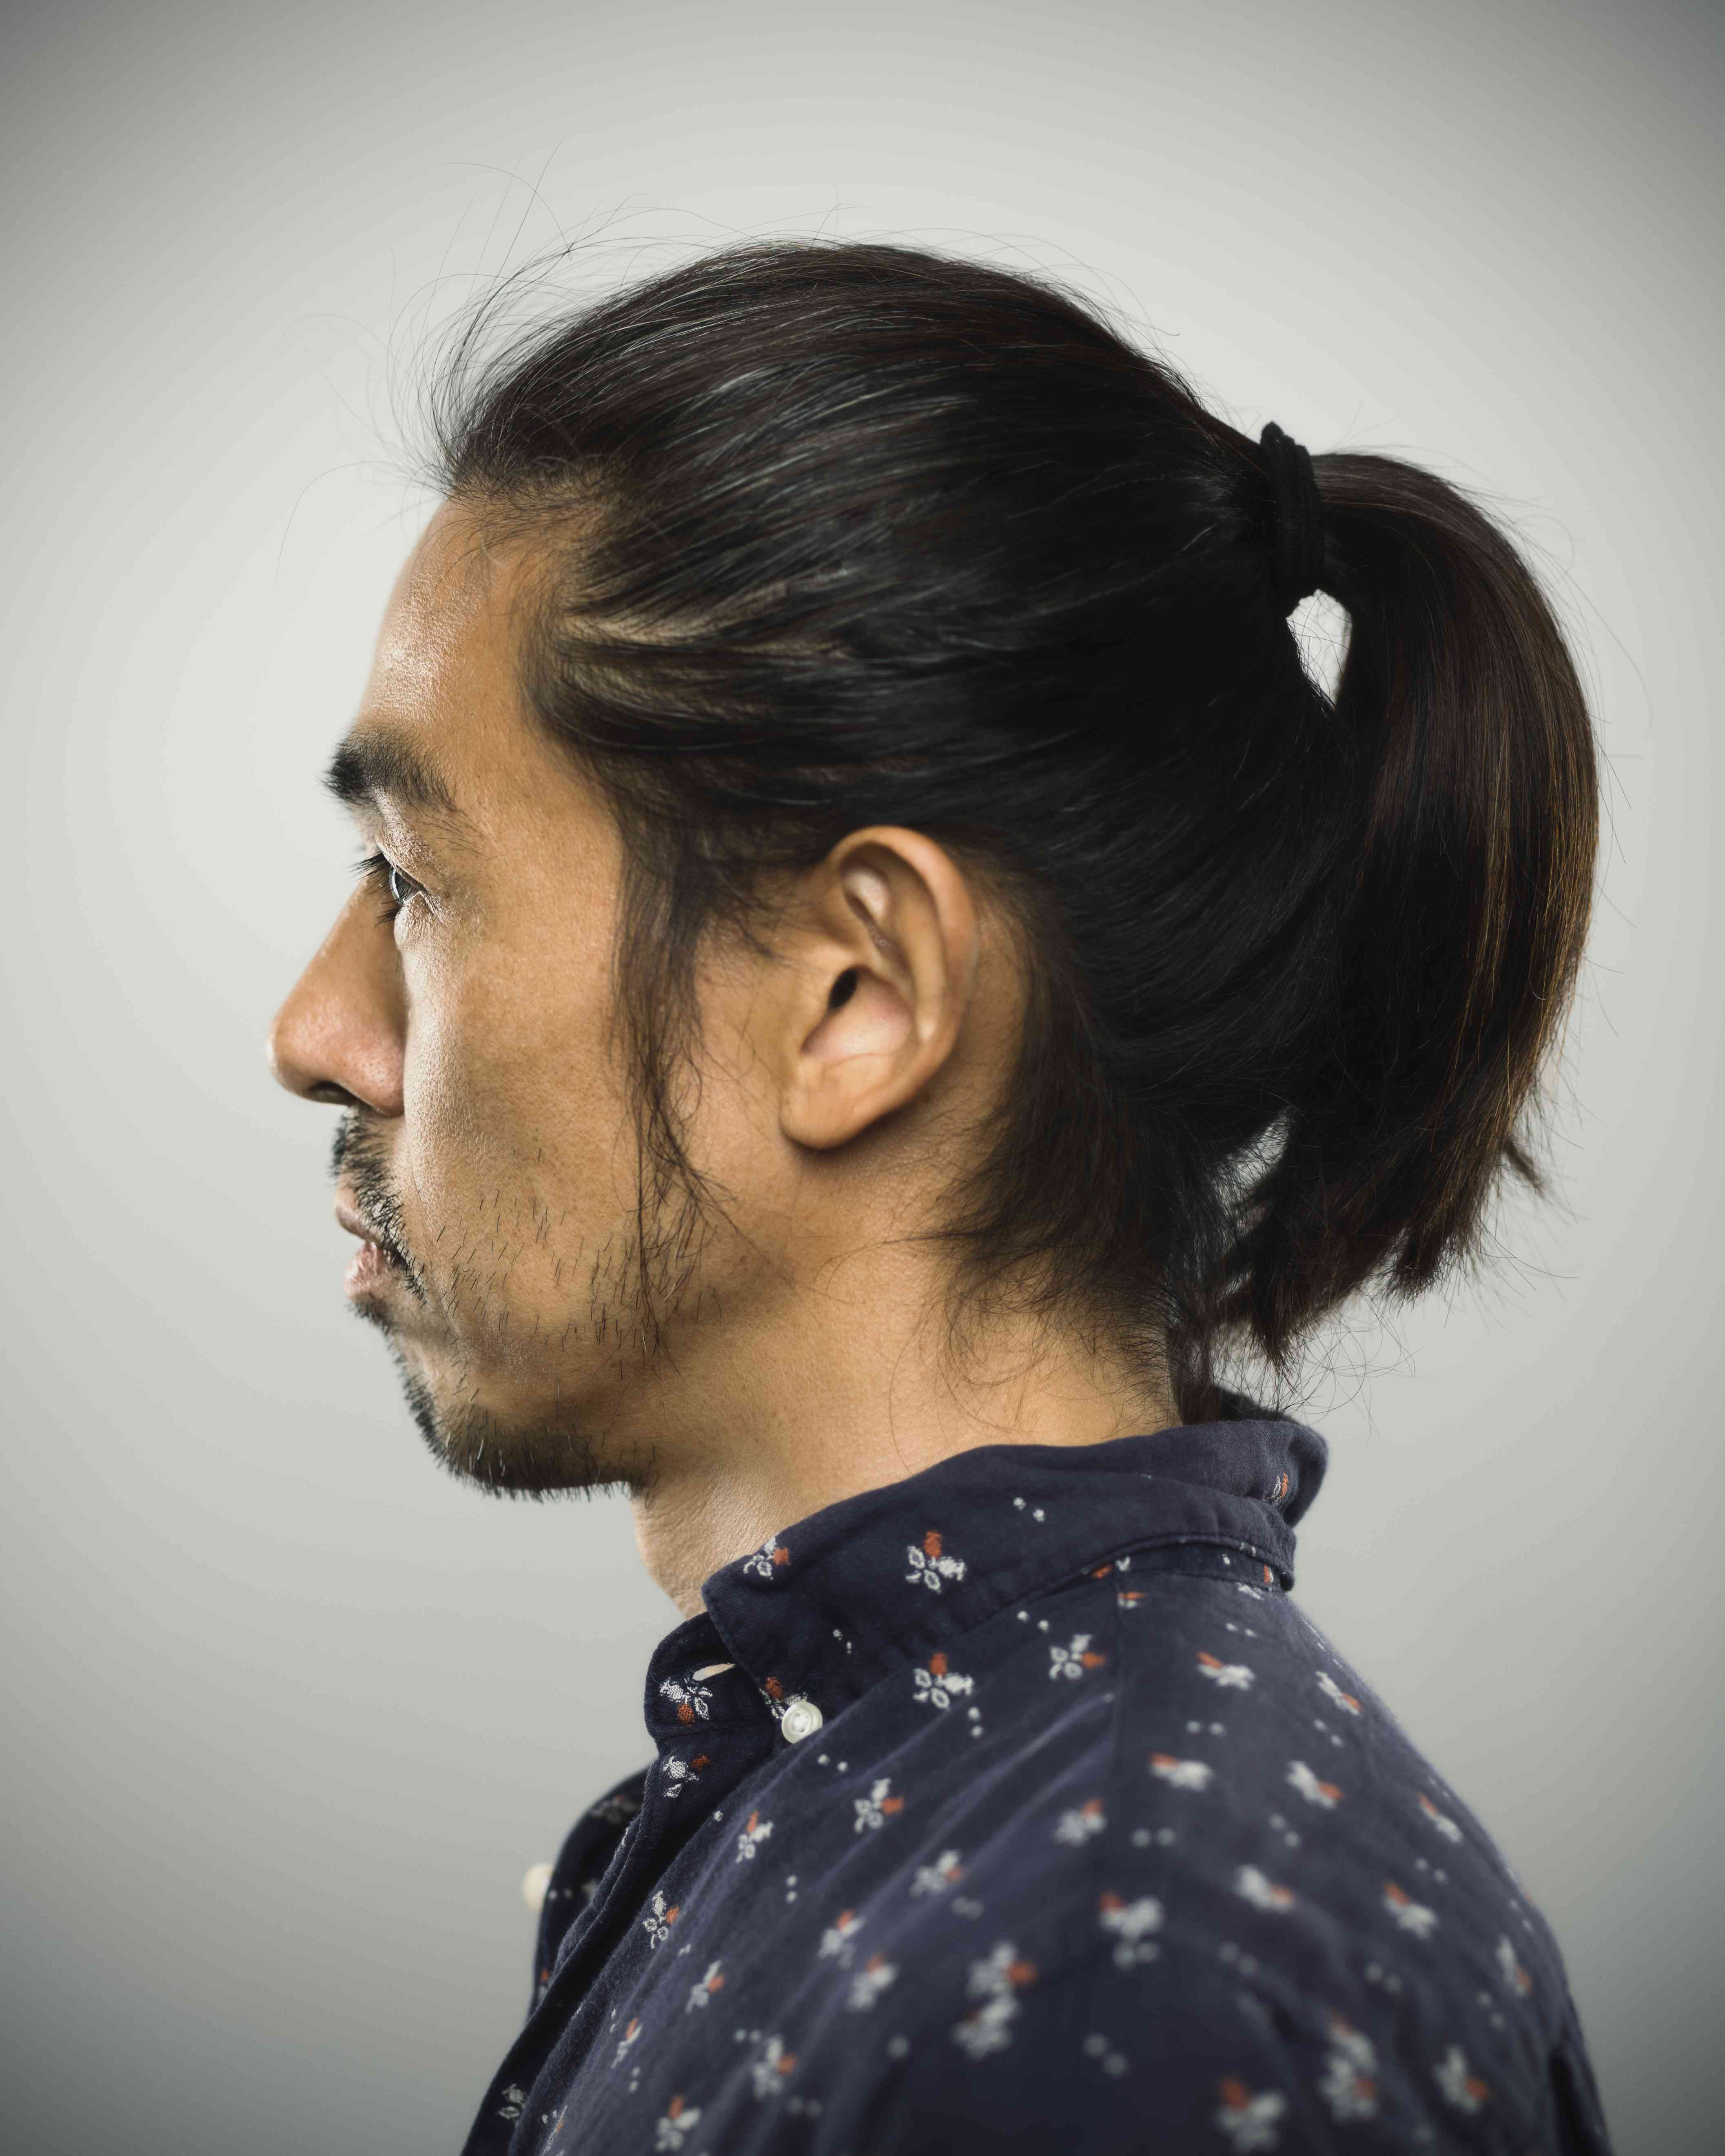 Side profile of a Japanese man with a ponytail